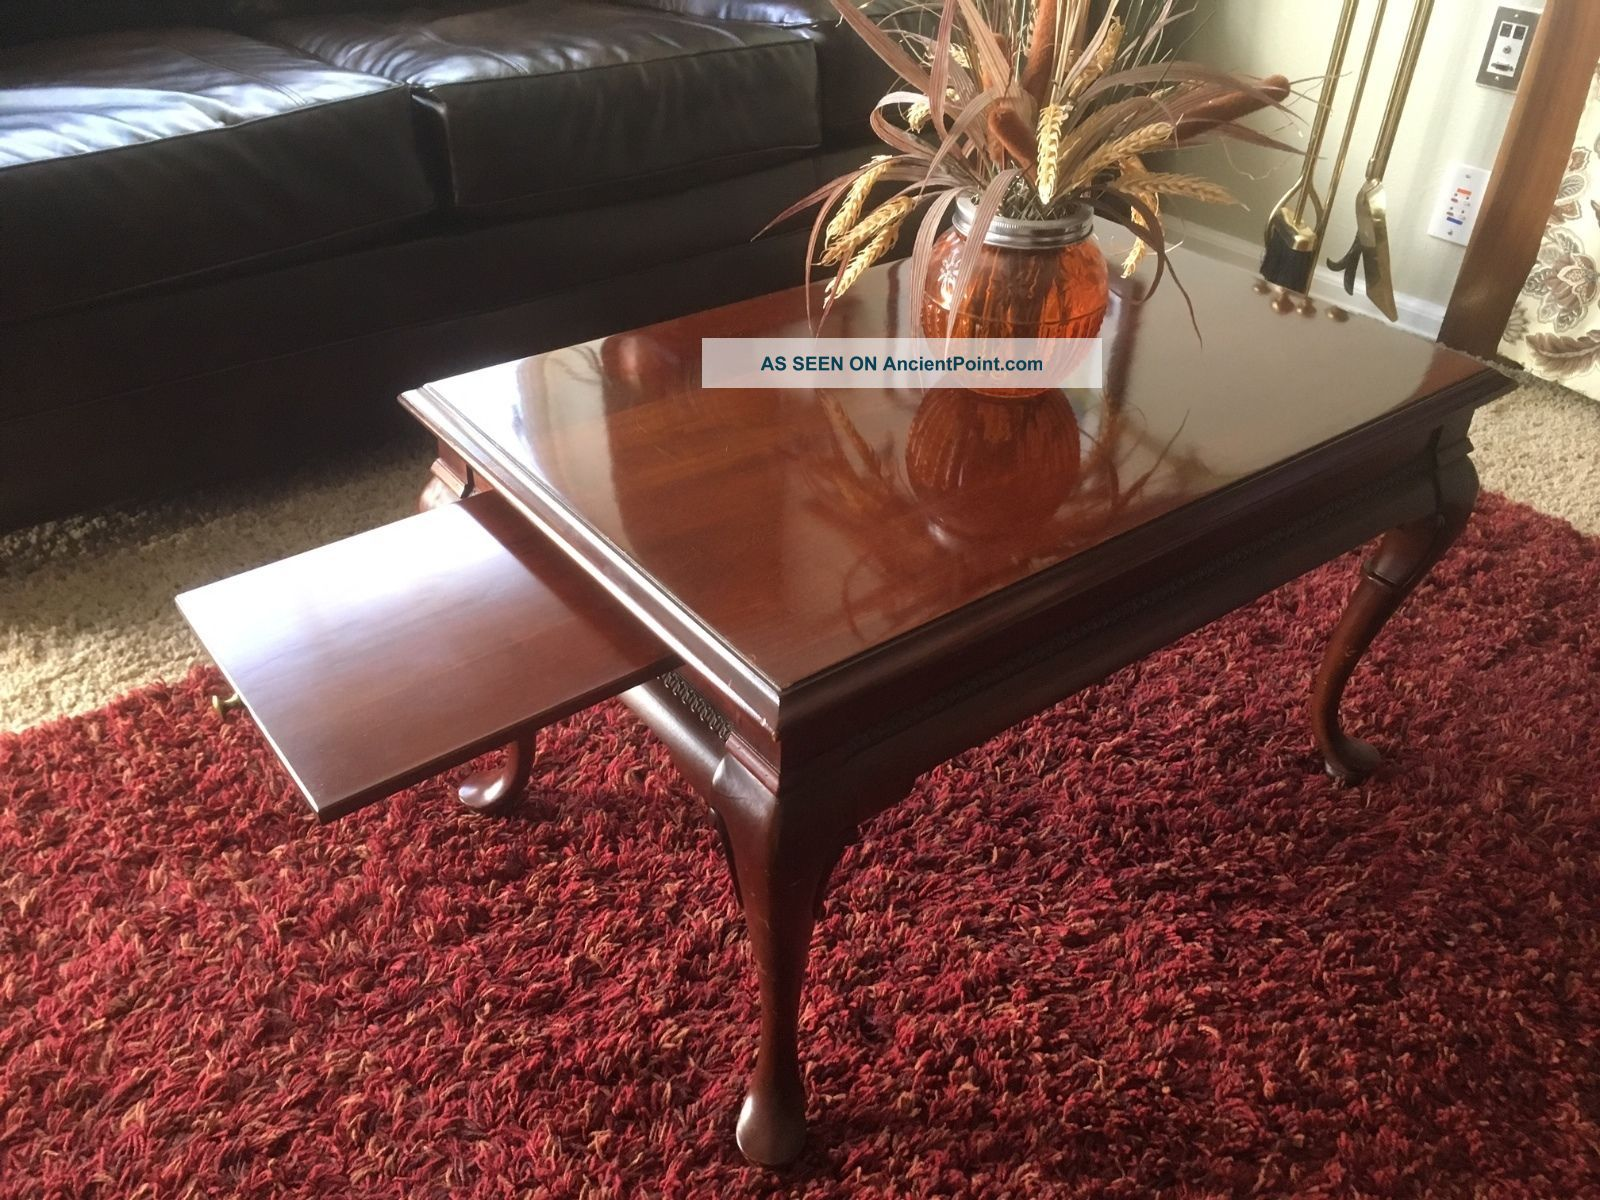 Gordons Coffee Table Mahogony Wood Fine Furniture Vintage Solid Pull Out Extends Post-1950 photo